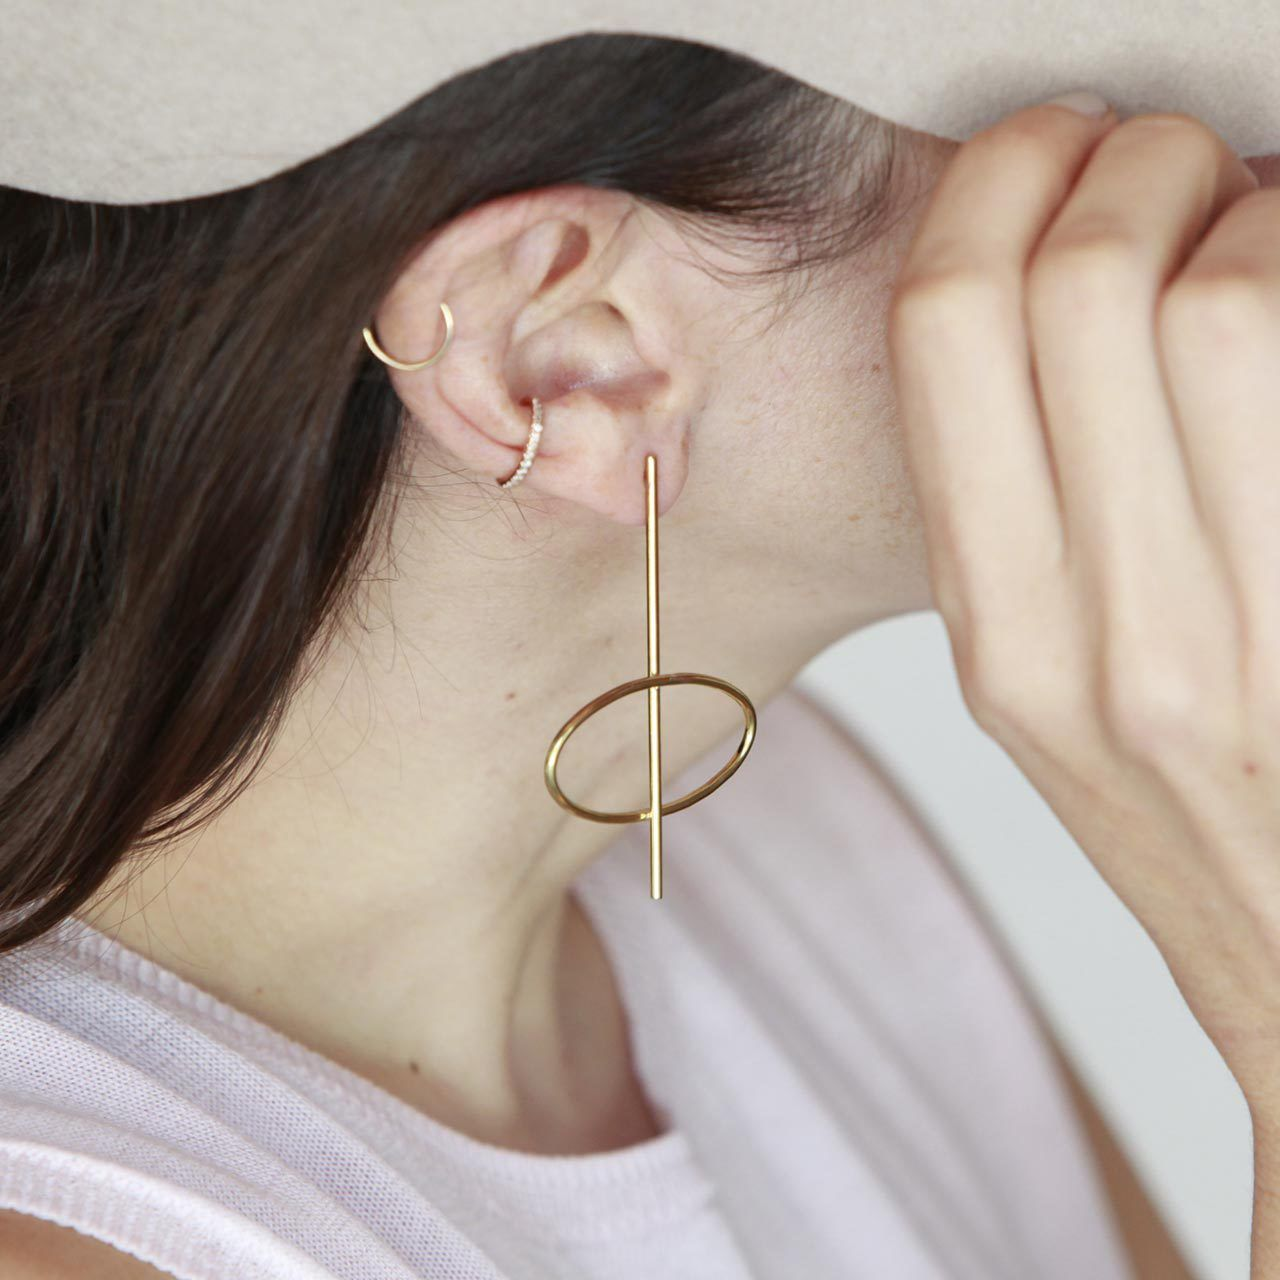 Gabriela Artigas Online Store - Lunar Earrings (Pair), 323-857-0200 (http://www.gabrielaartigas.com/lunar-earrings-pair/)